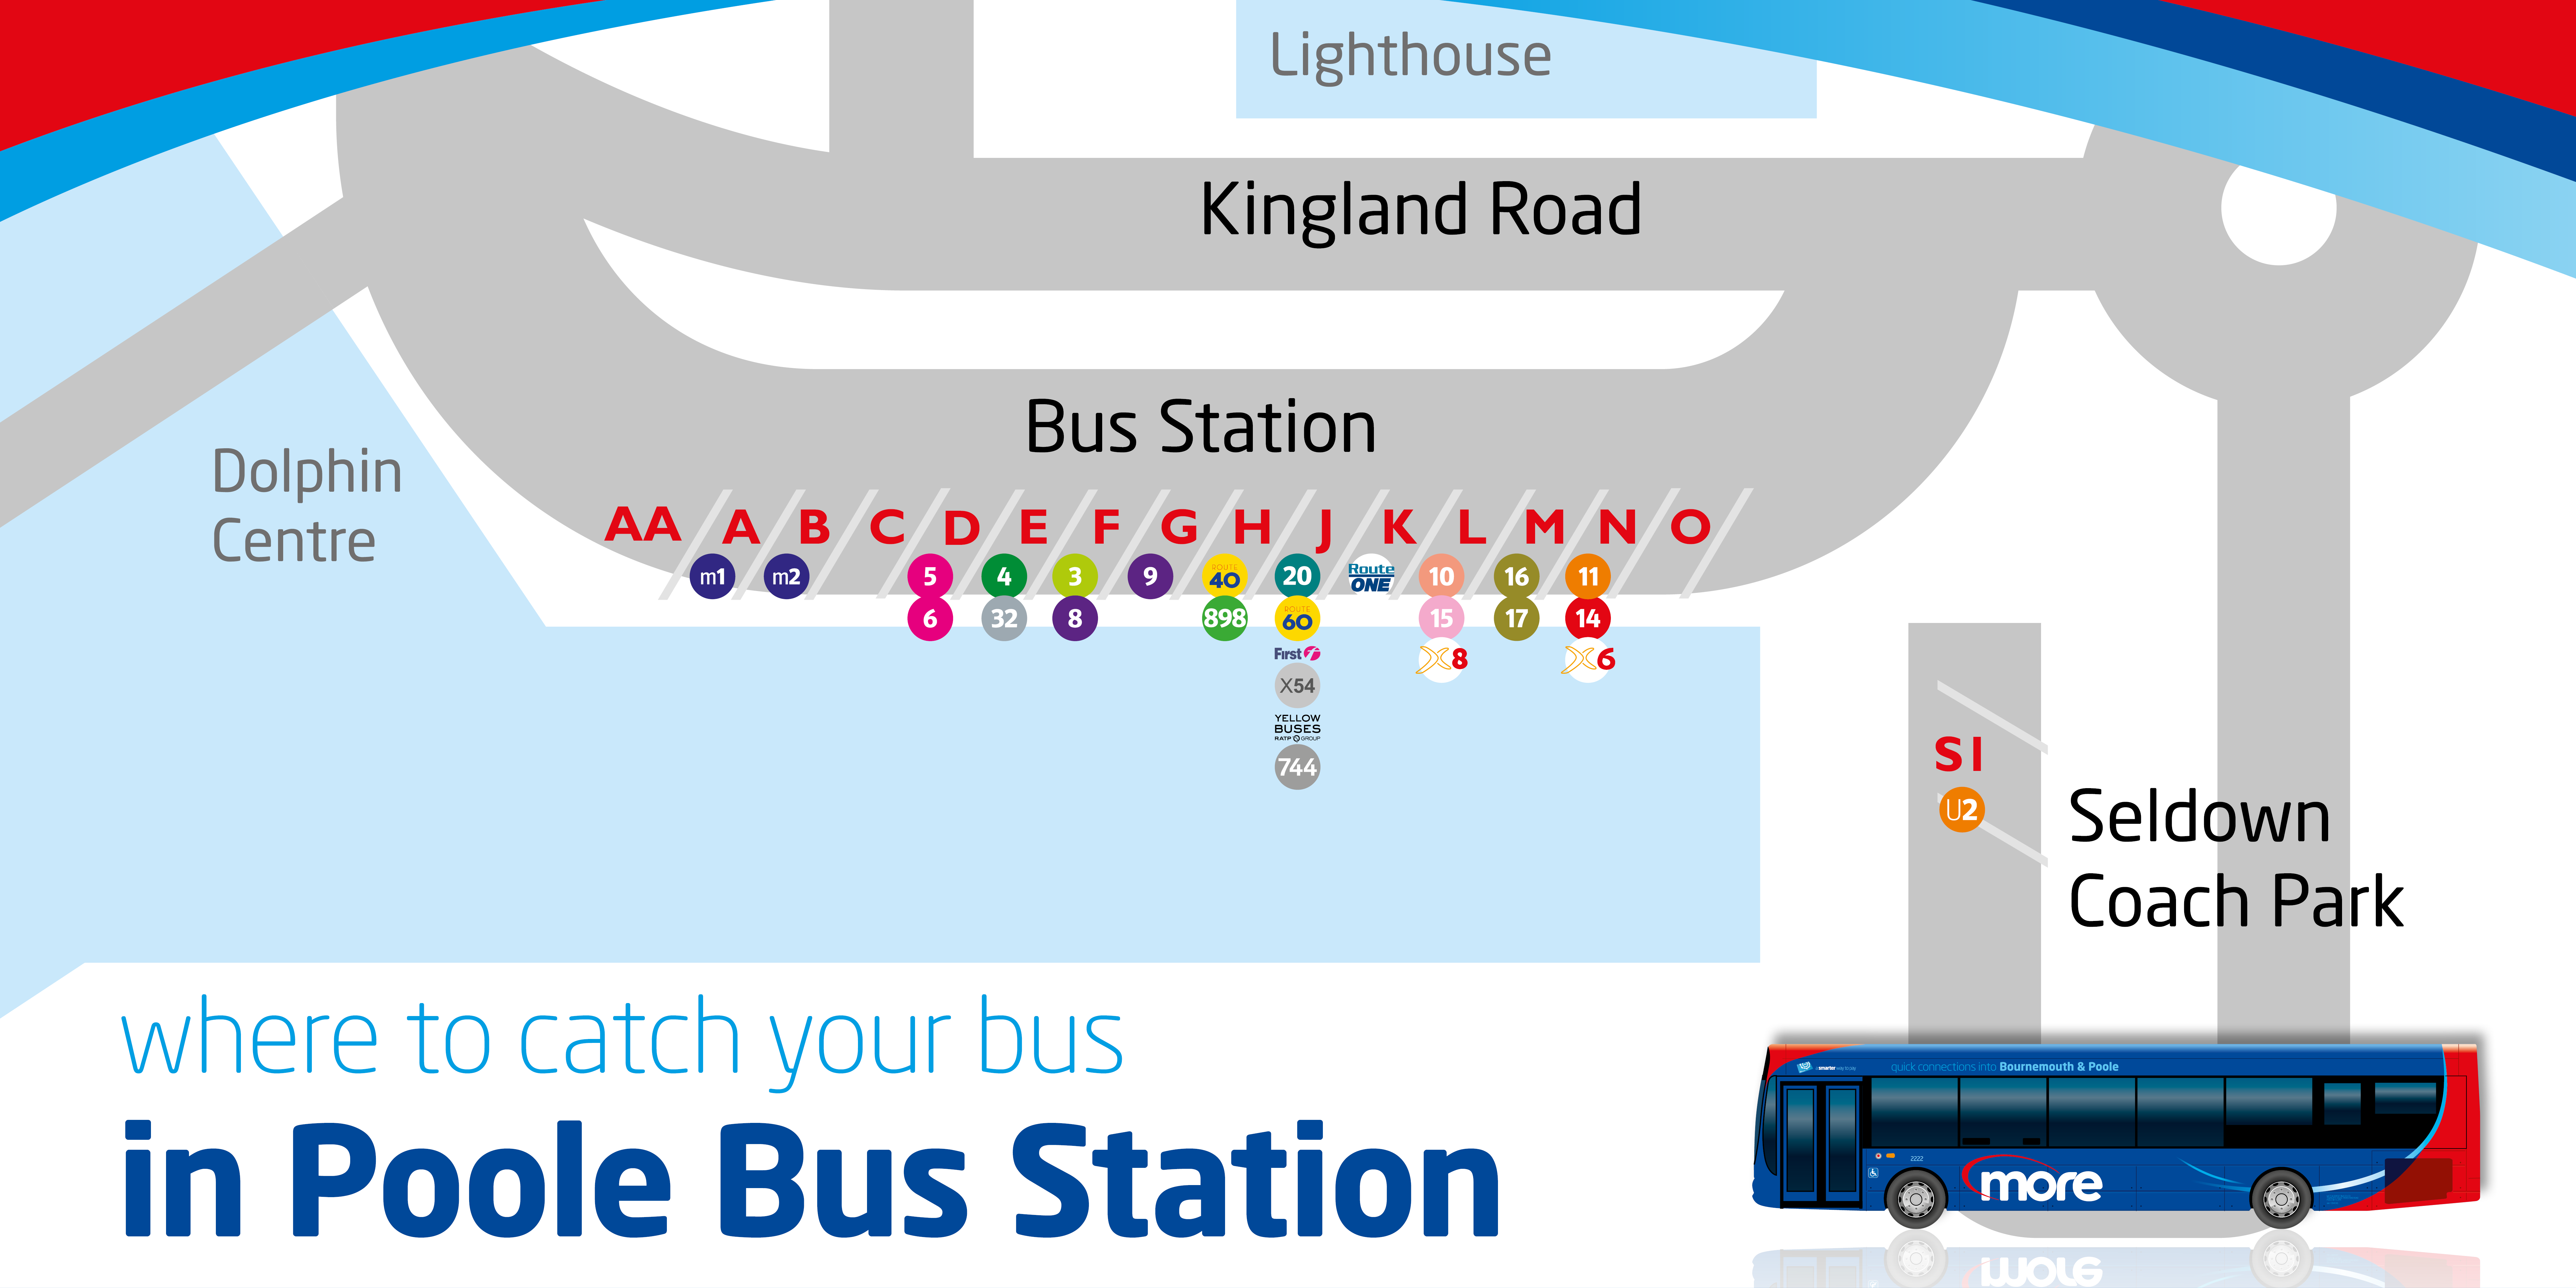 where to catch your bus map